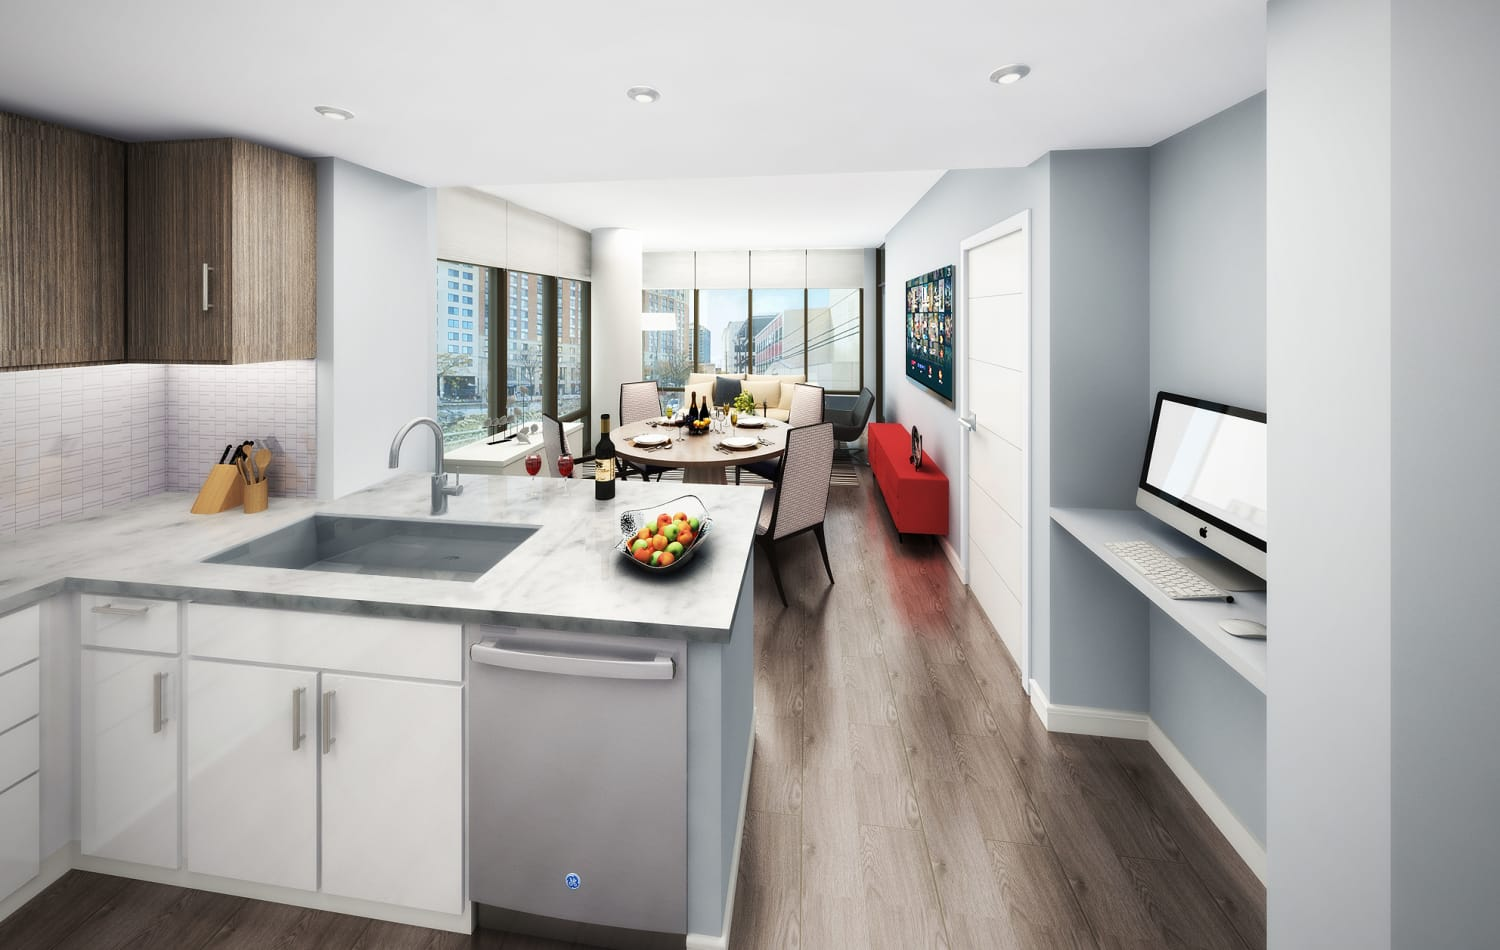 Rendering of modern kitchen in model home at Gallery Bethesda II in Bethesda, MD